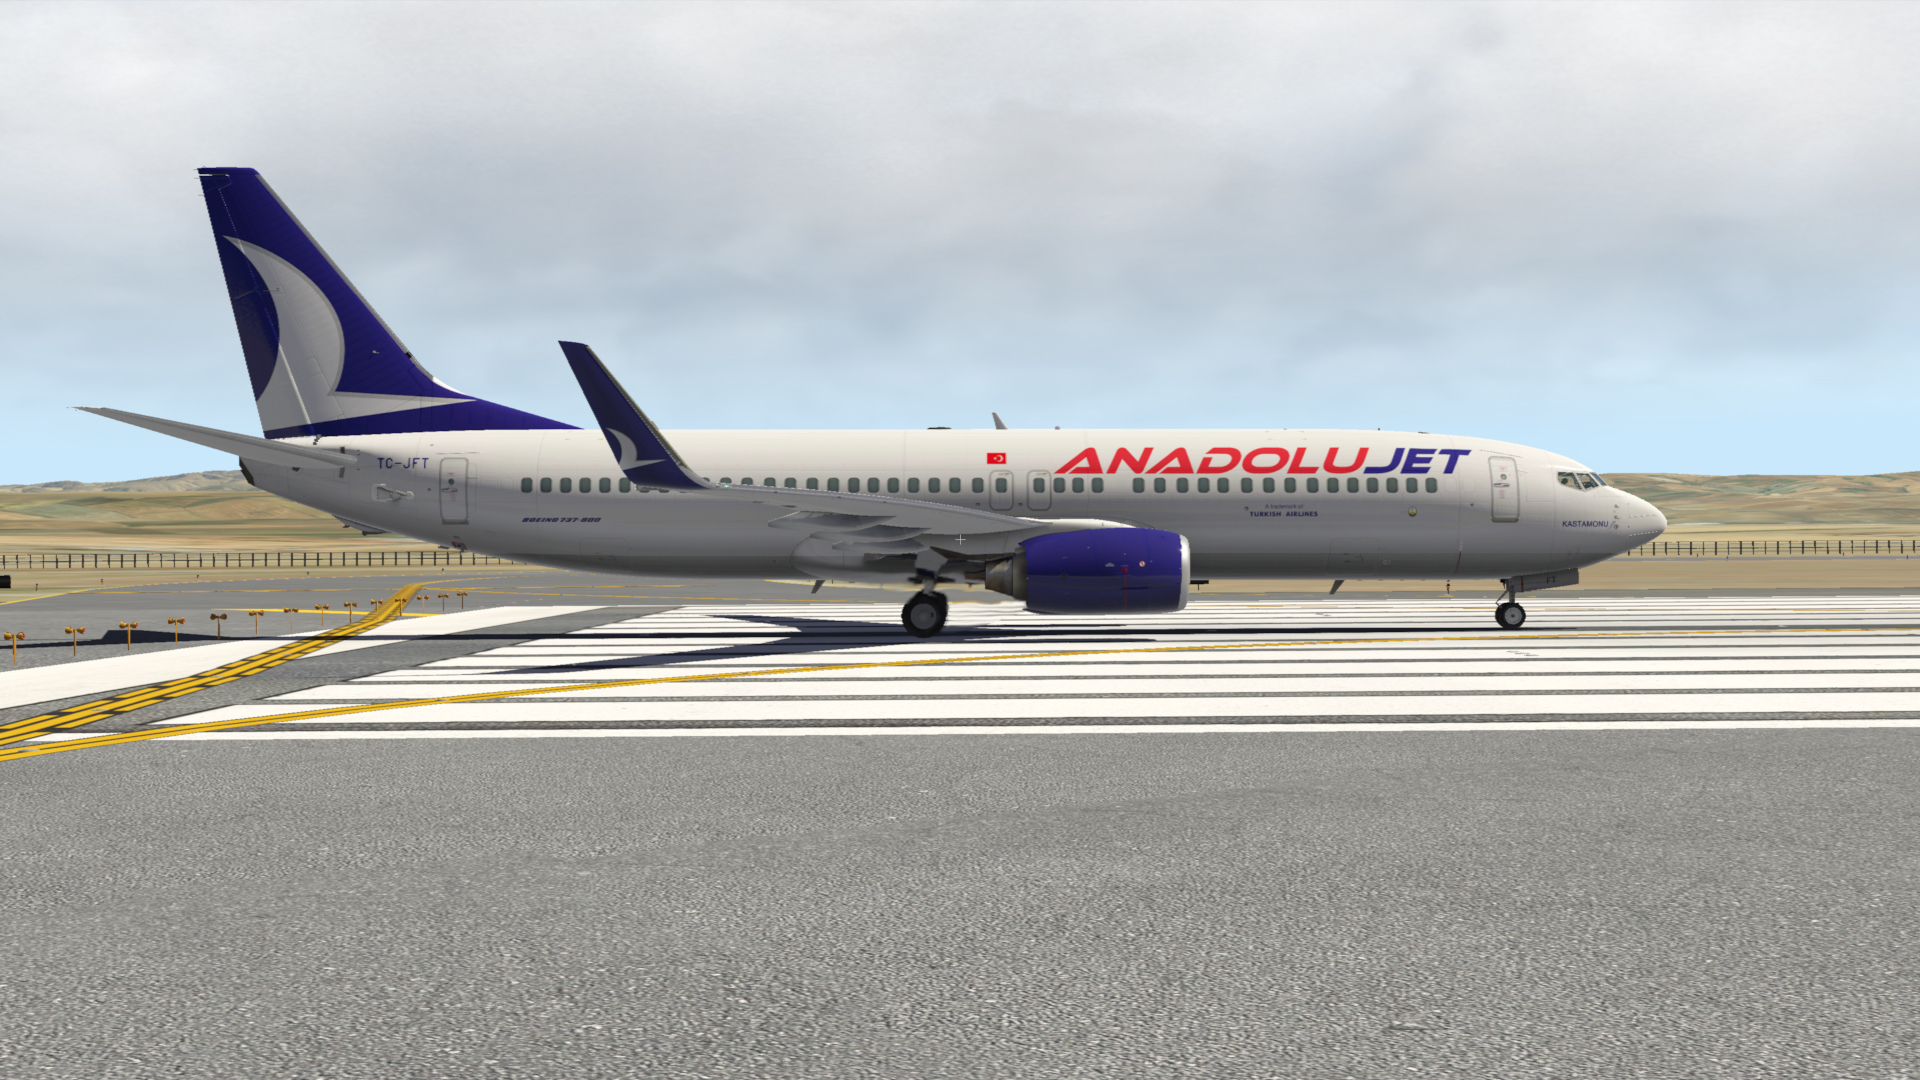 AnadoluJet TC-JFT Livery for ZIBO B737-800 or Default B737